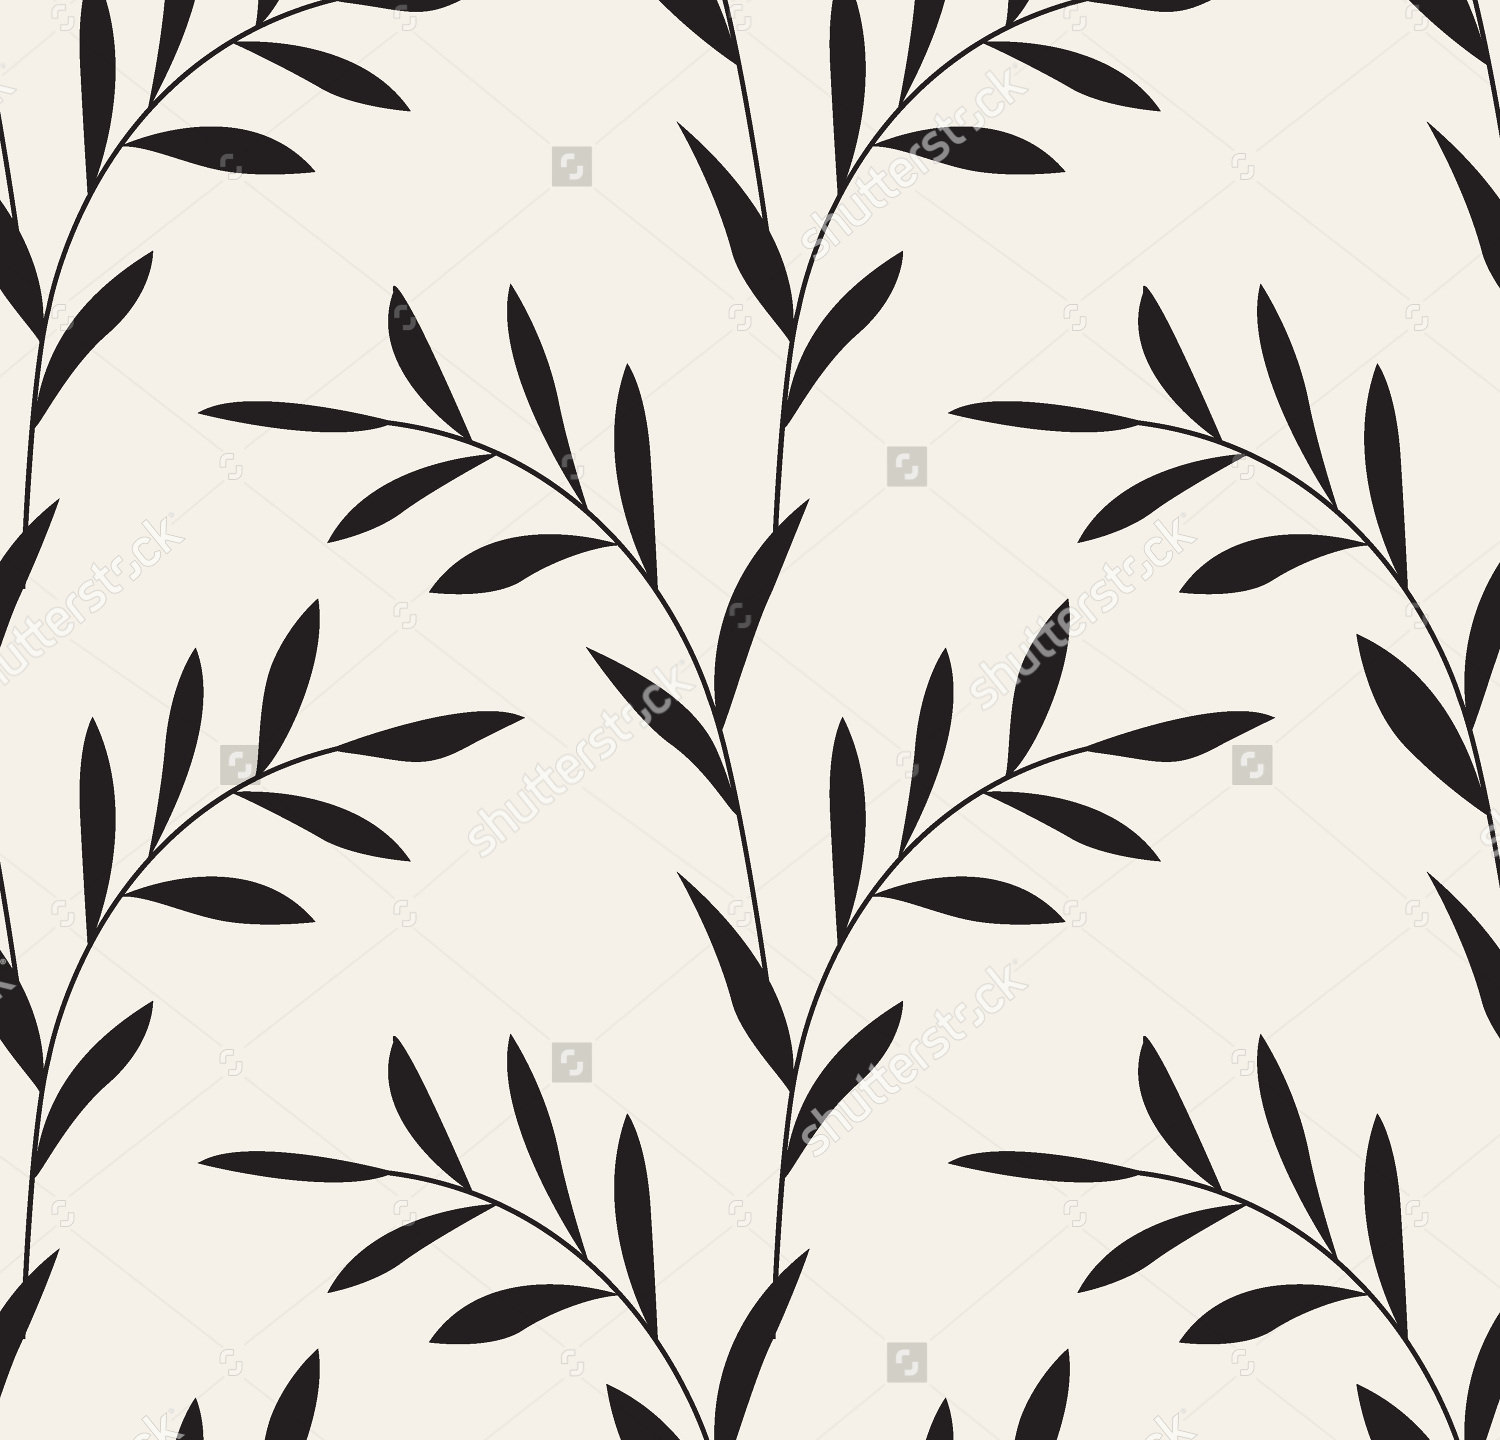 Black And White Leaf Design | www.imgkid.com - The Image ...